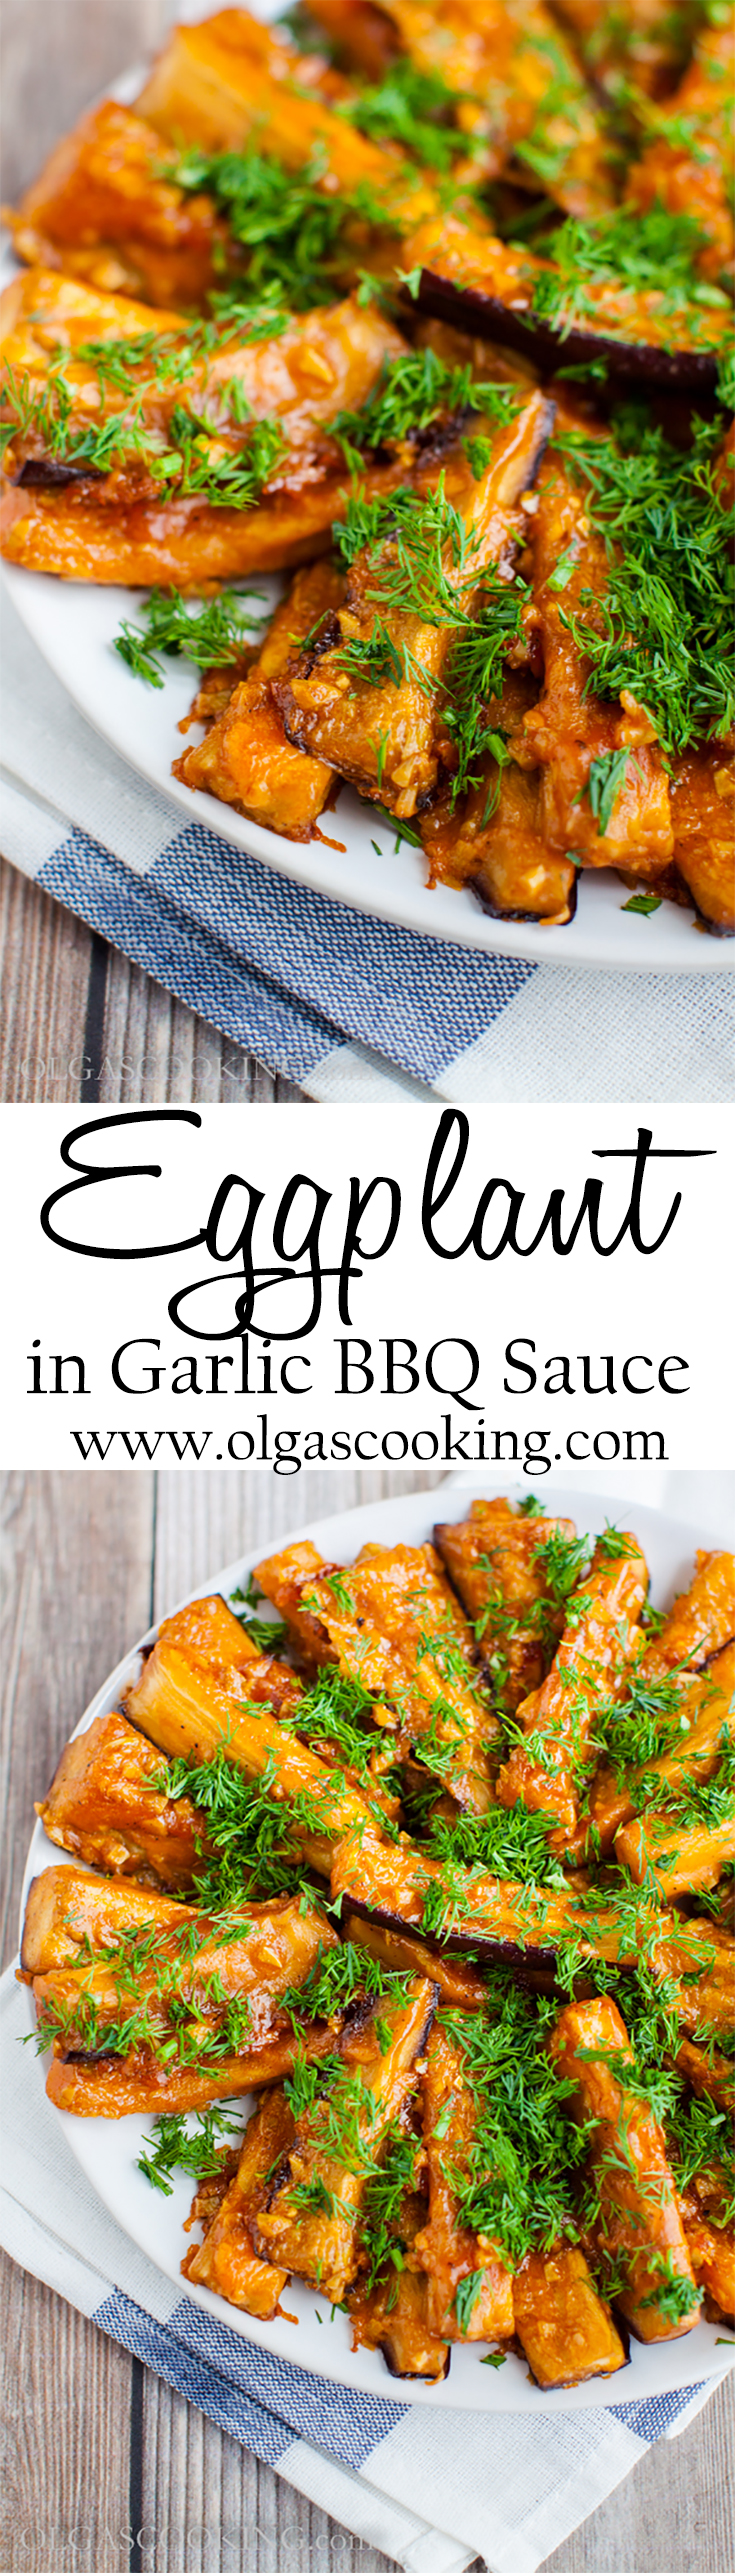 Eggplant in Garlic BBQ Sauce